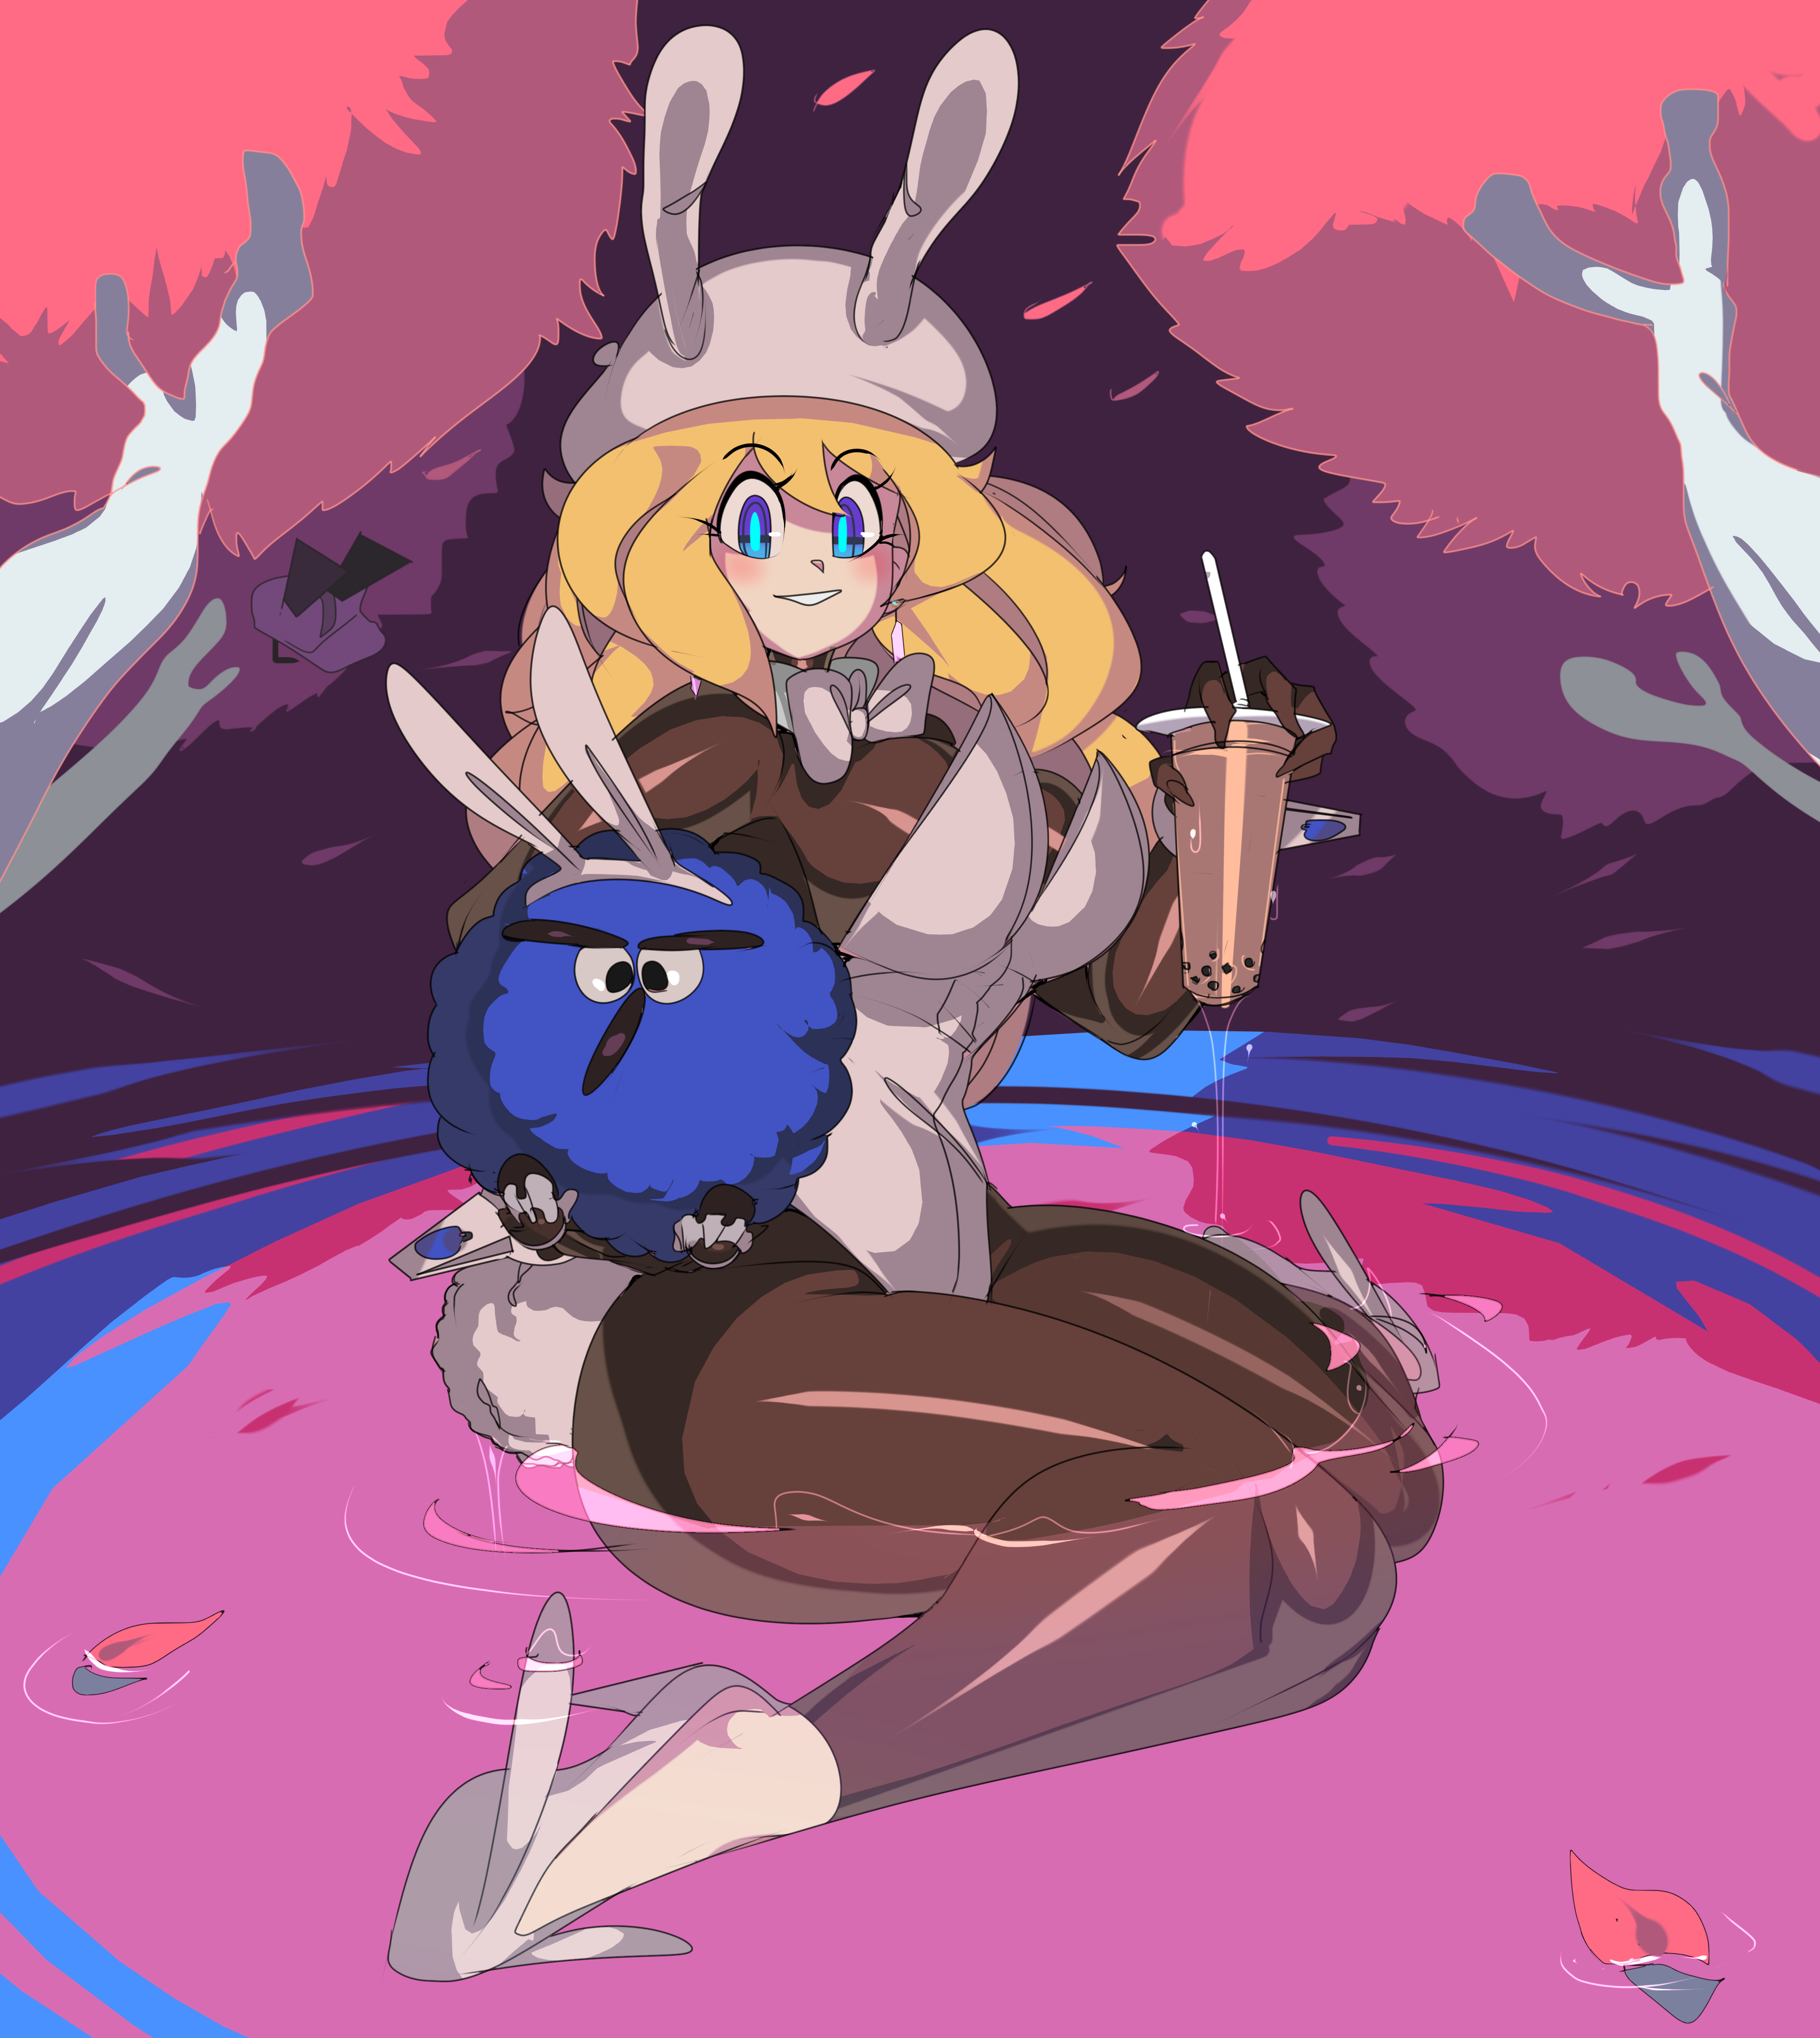 Lily bunny outfit